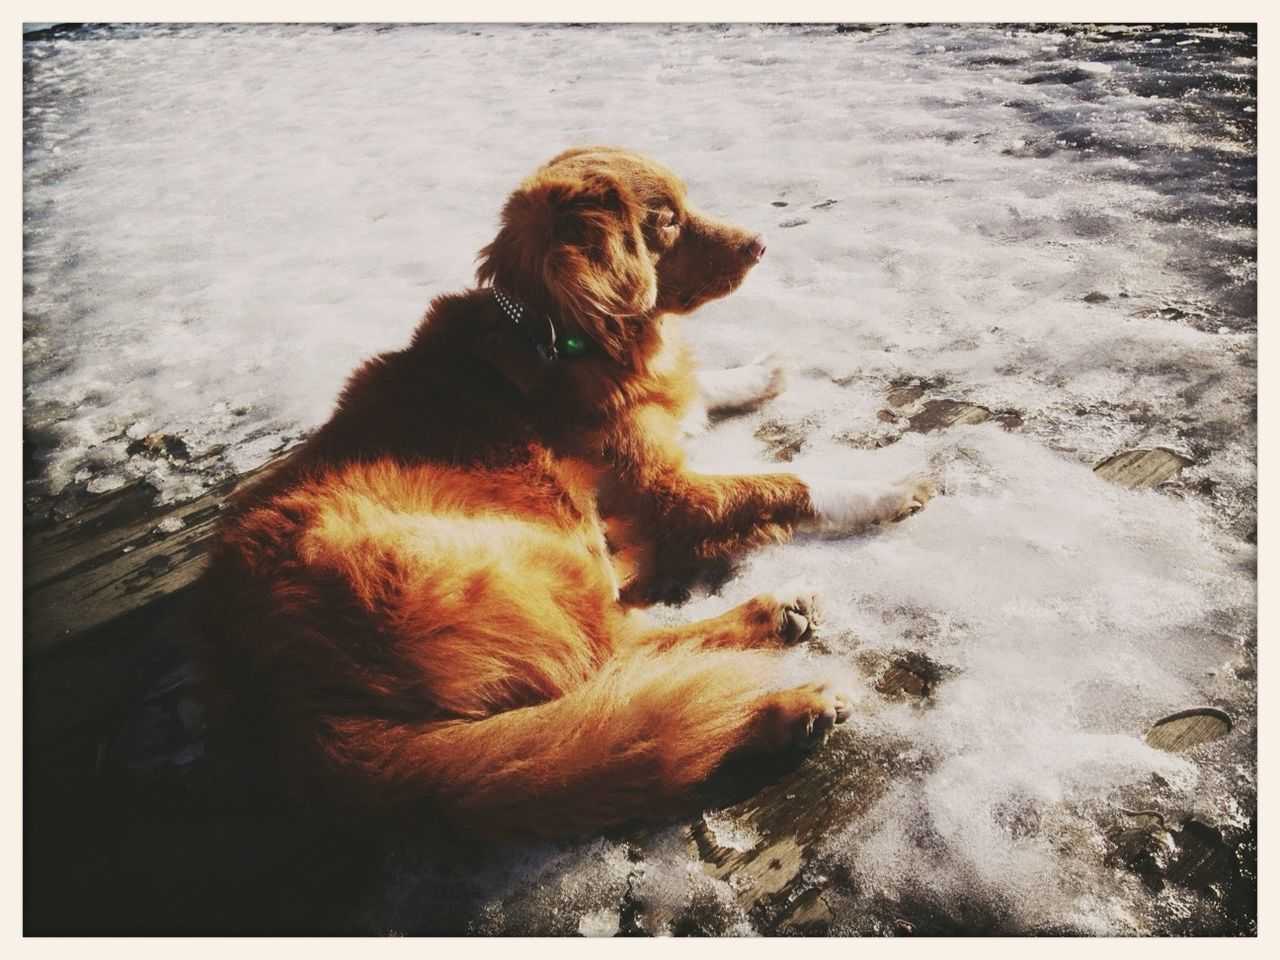 dog, pets, one animal, animal themes, domestic animals, no people, outdoors, mammal, day, beach, sitting, nature, water, full length